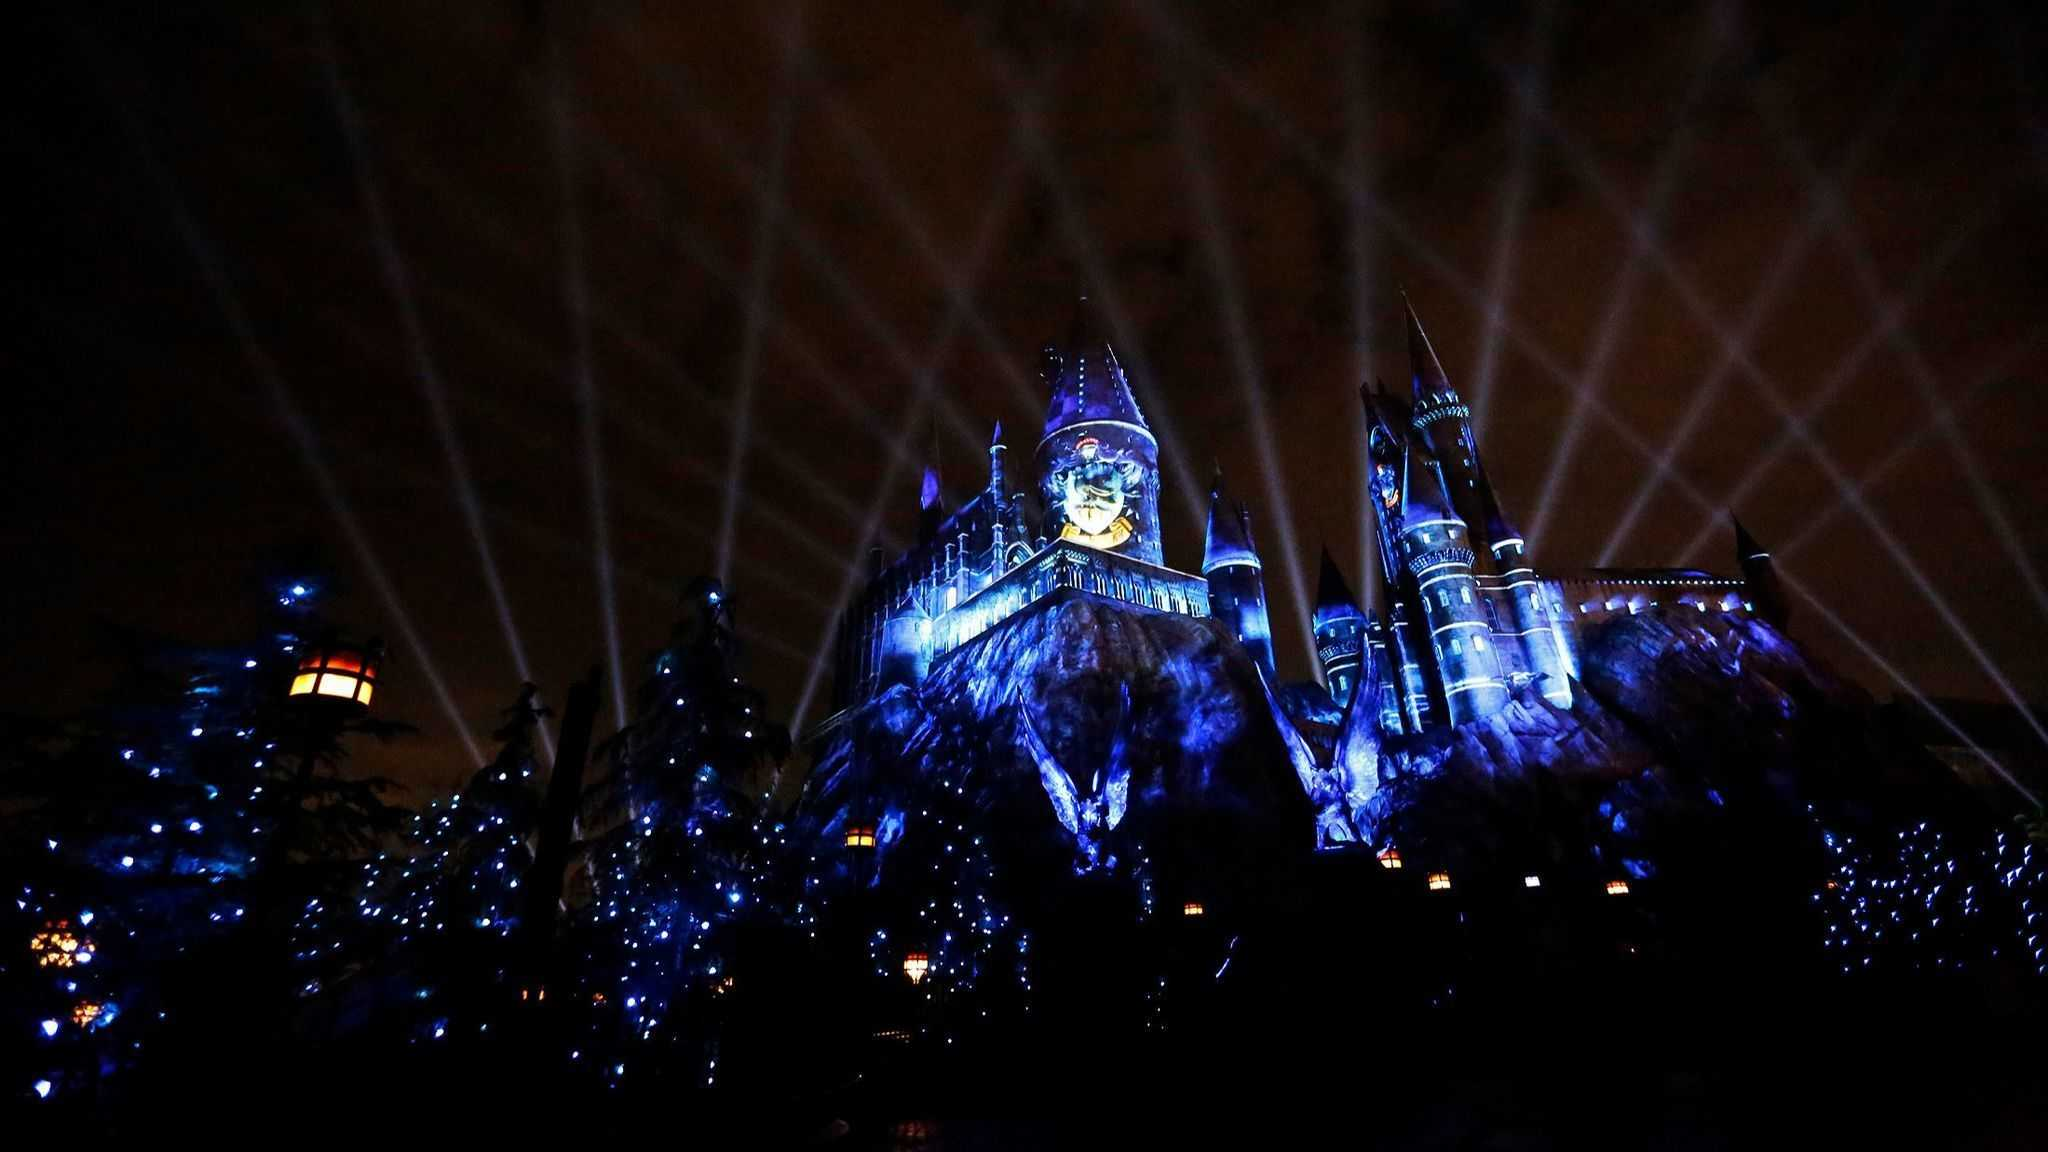 Hogwarts Castle Nighttime Projection Show Debuting This Summertime